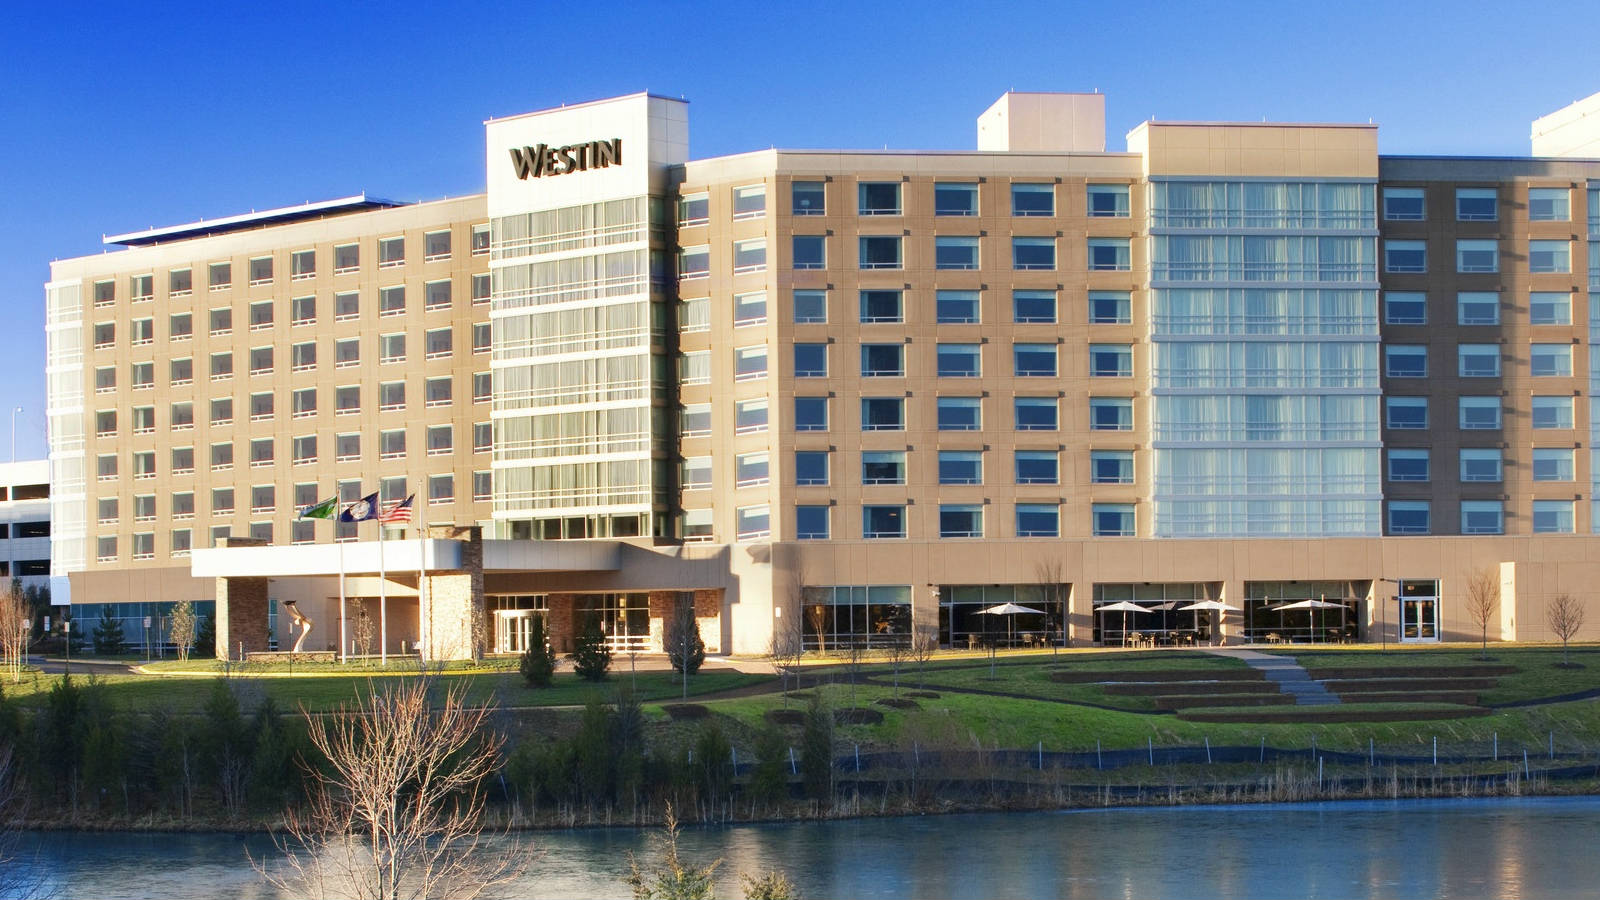 Dc Outdoor Wedding Venues The Westin Washington Dulles Airport